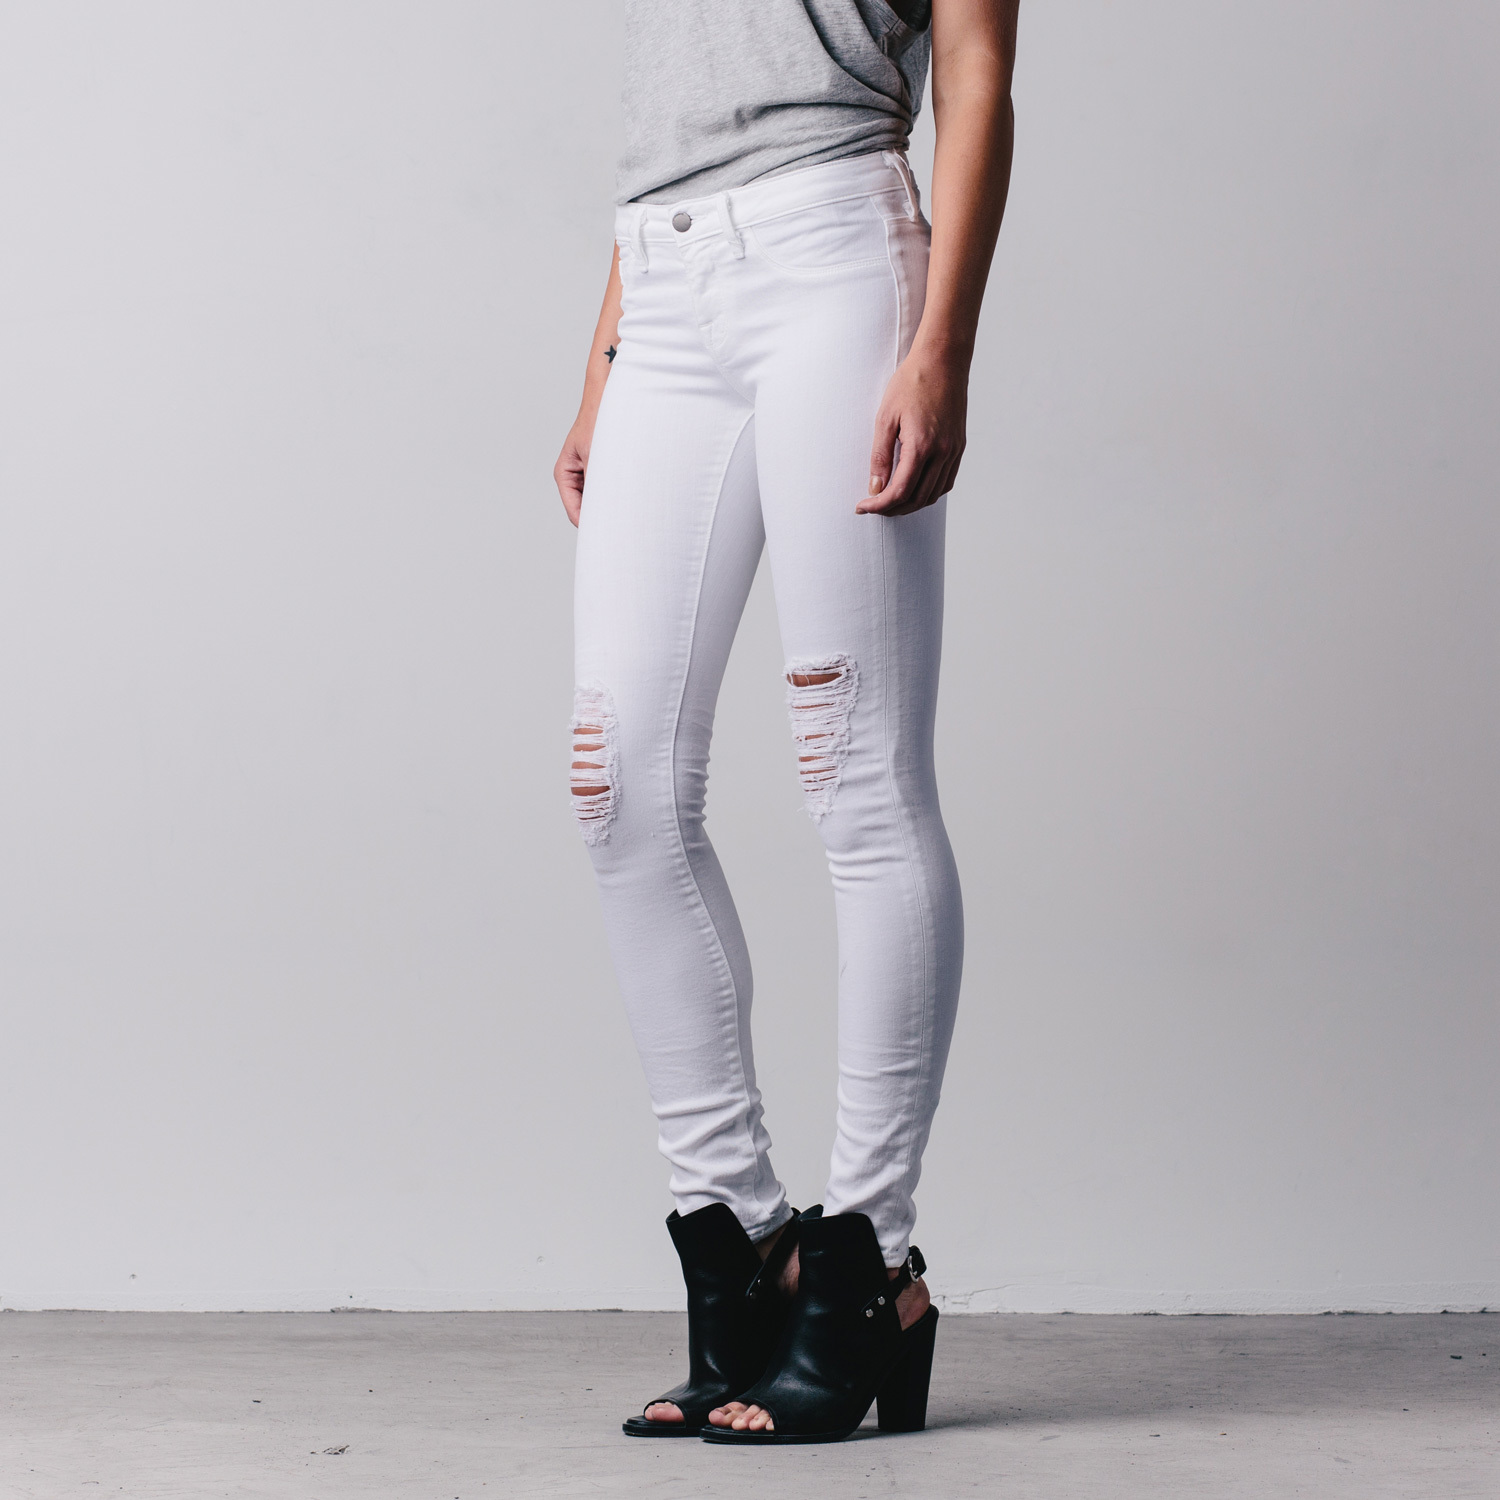 Ripped Mid Rise Skinny Jeans In White | DSTLD Luxury Jeans ...